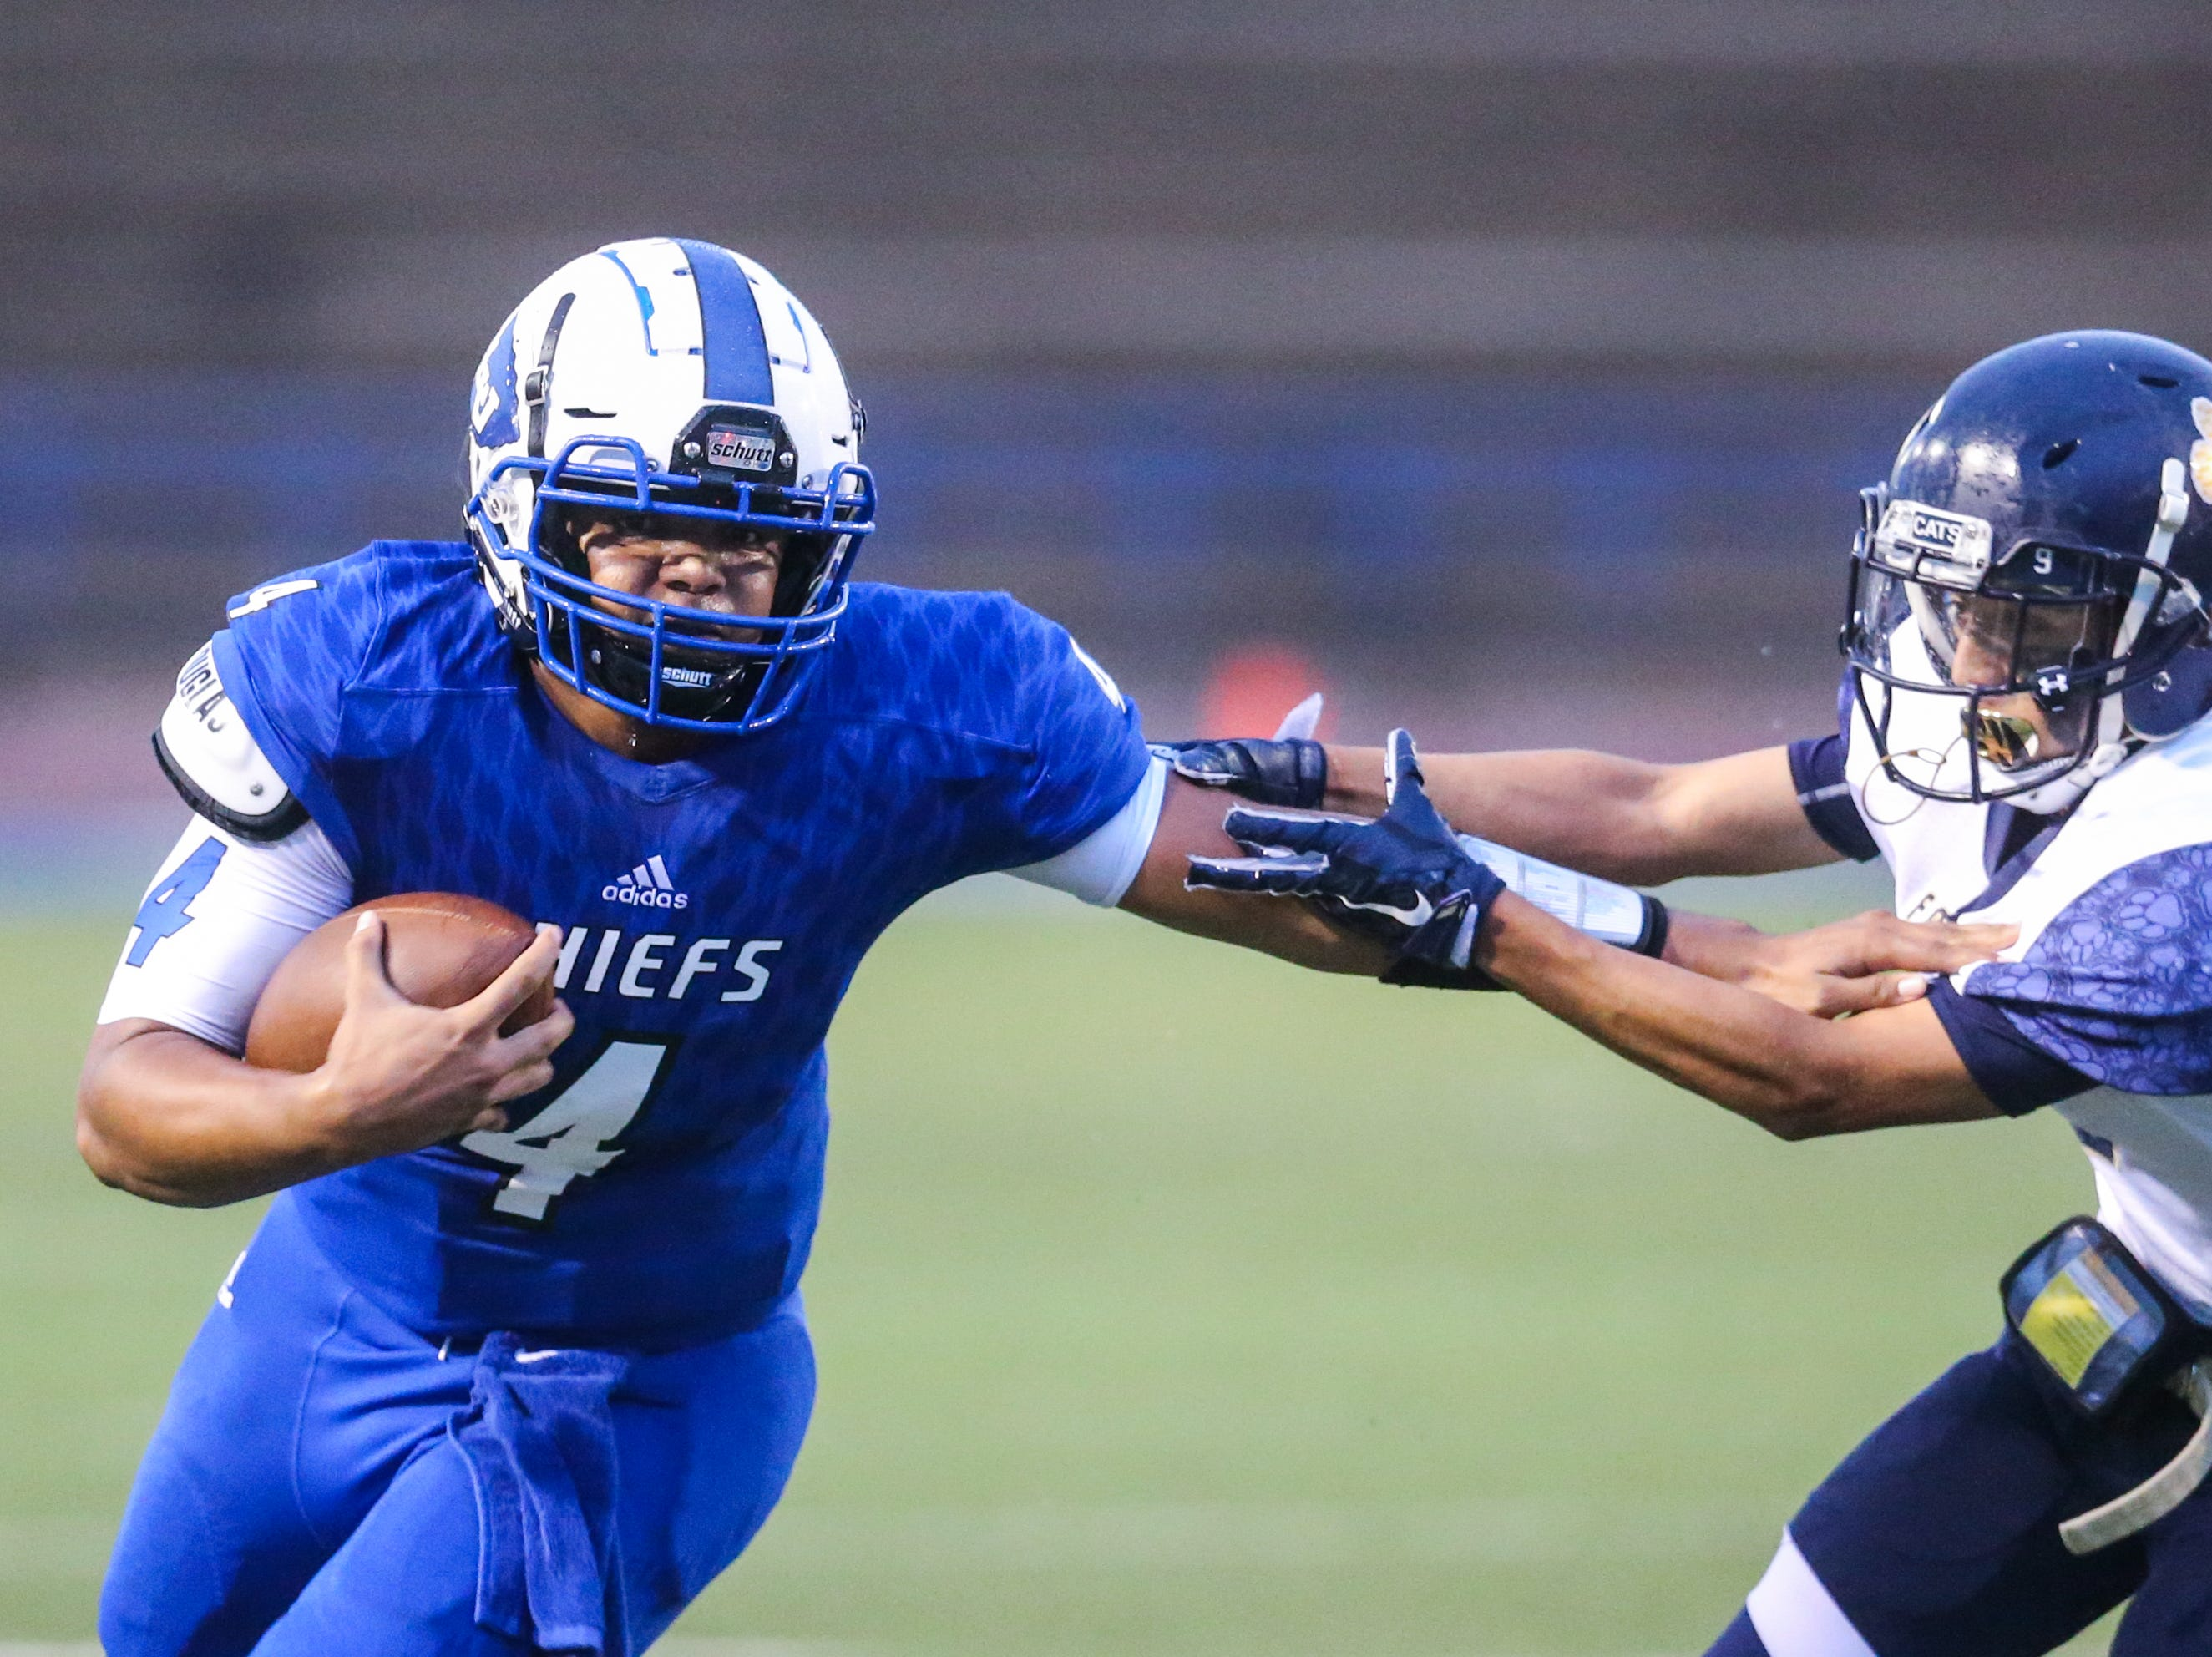 Lake View's Kendall Blue runs the ball against Fabens Friday, Sept. 7, 2018, at San Angelo Stadium.